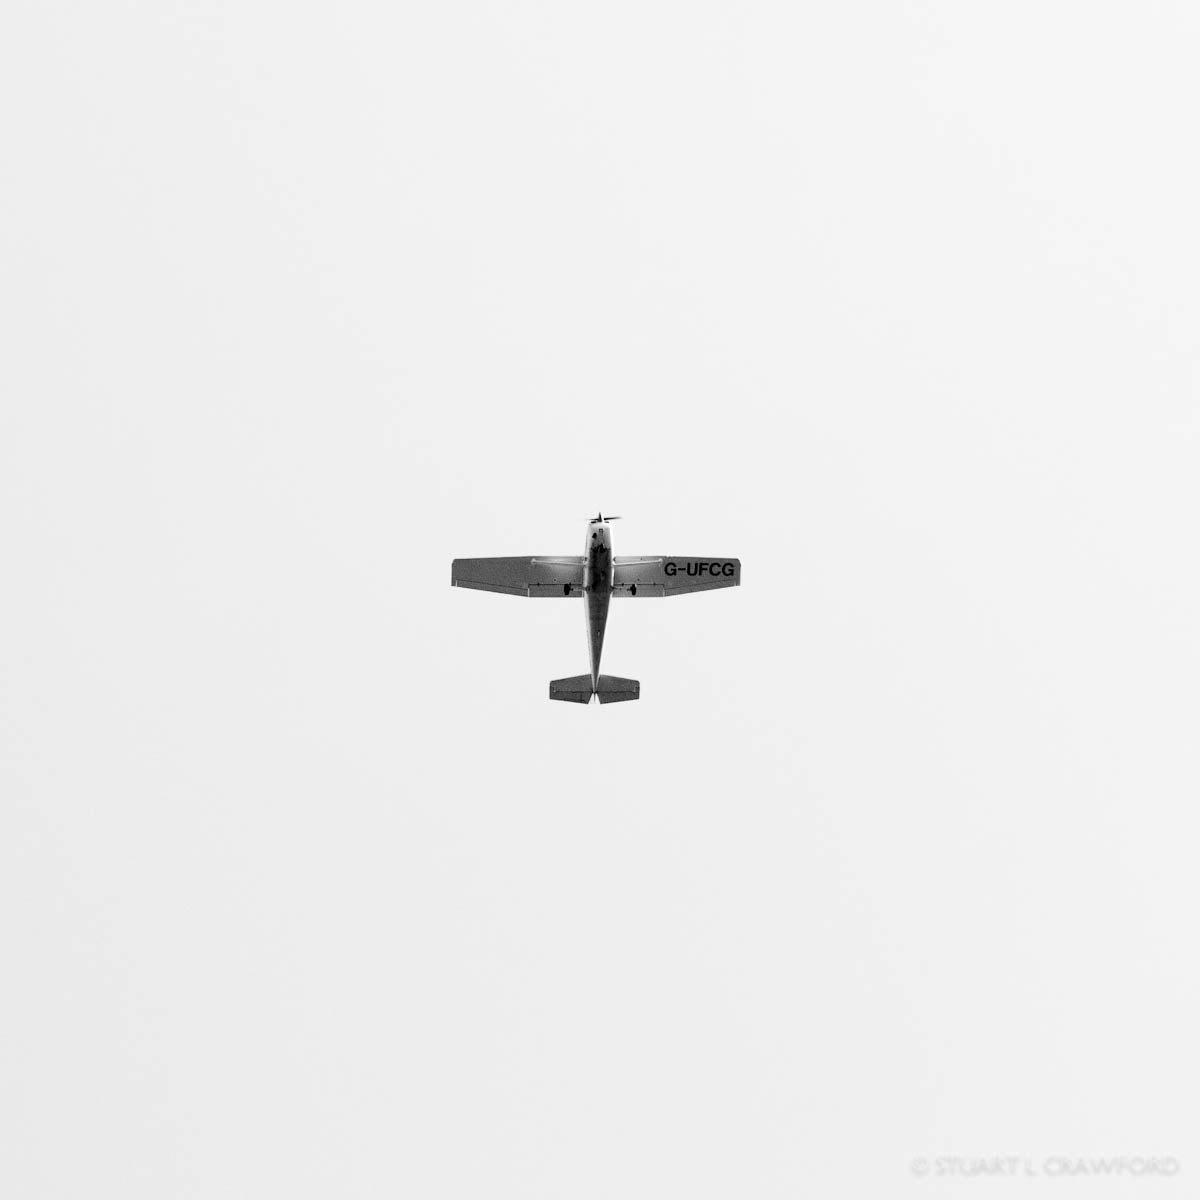 Photograph Plane by Stuart Crawford on 500px